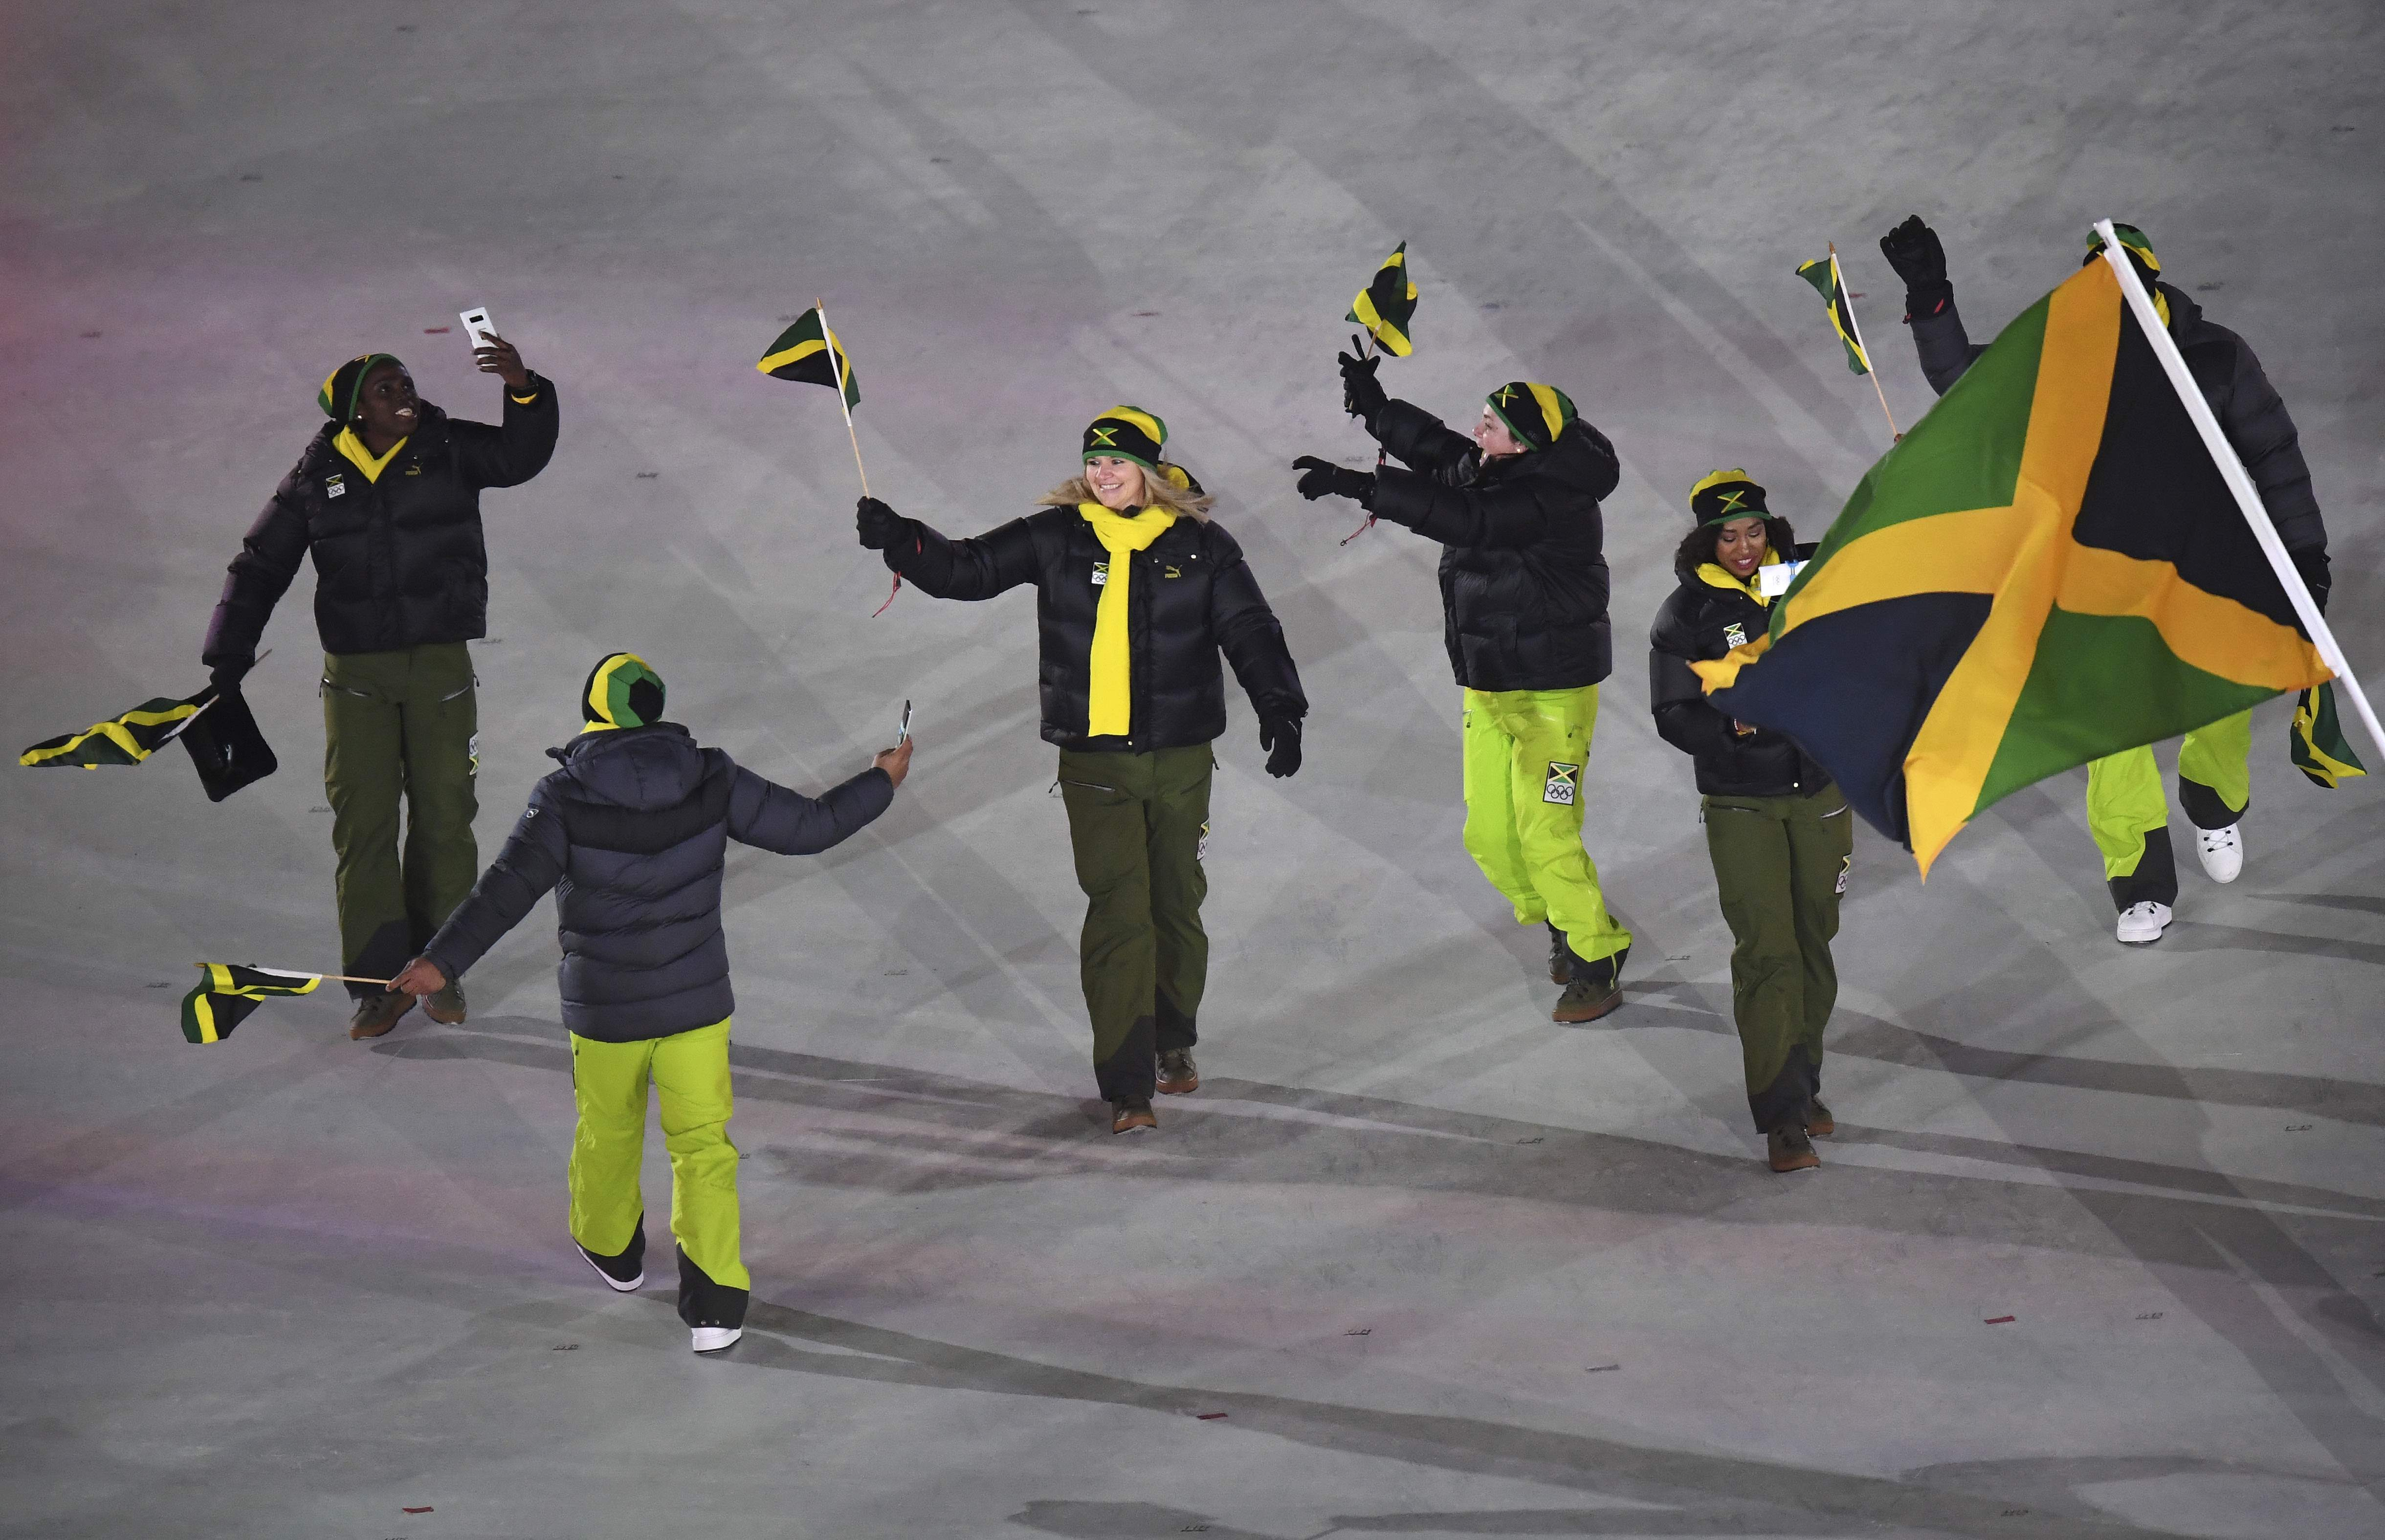 Jamaica arrives during the opening ceremony of the 2018 Winter Olympics in Pyeongchang, South Korea, Friday, Feb. 9, 2018. (Franck Fife/Pool Photo via AP)